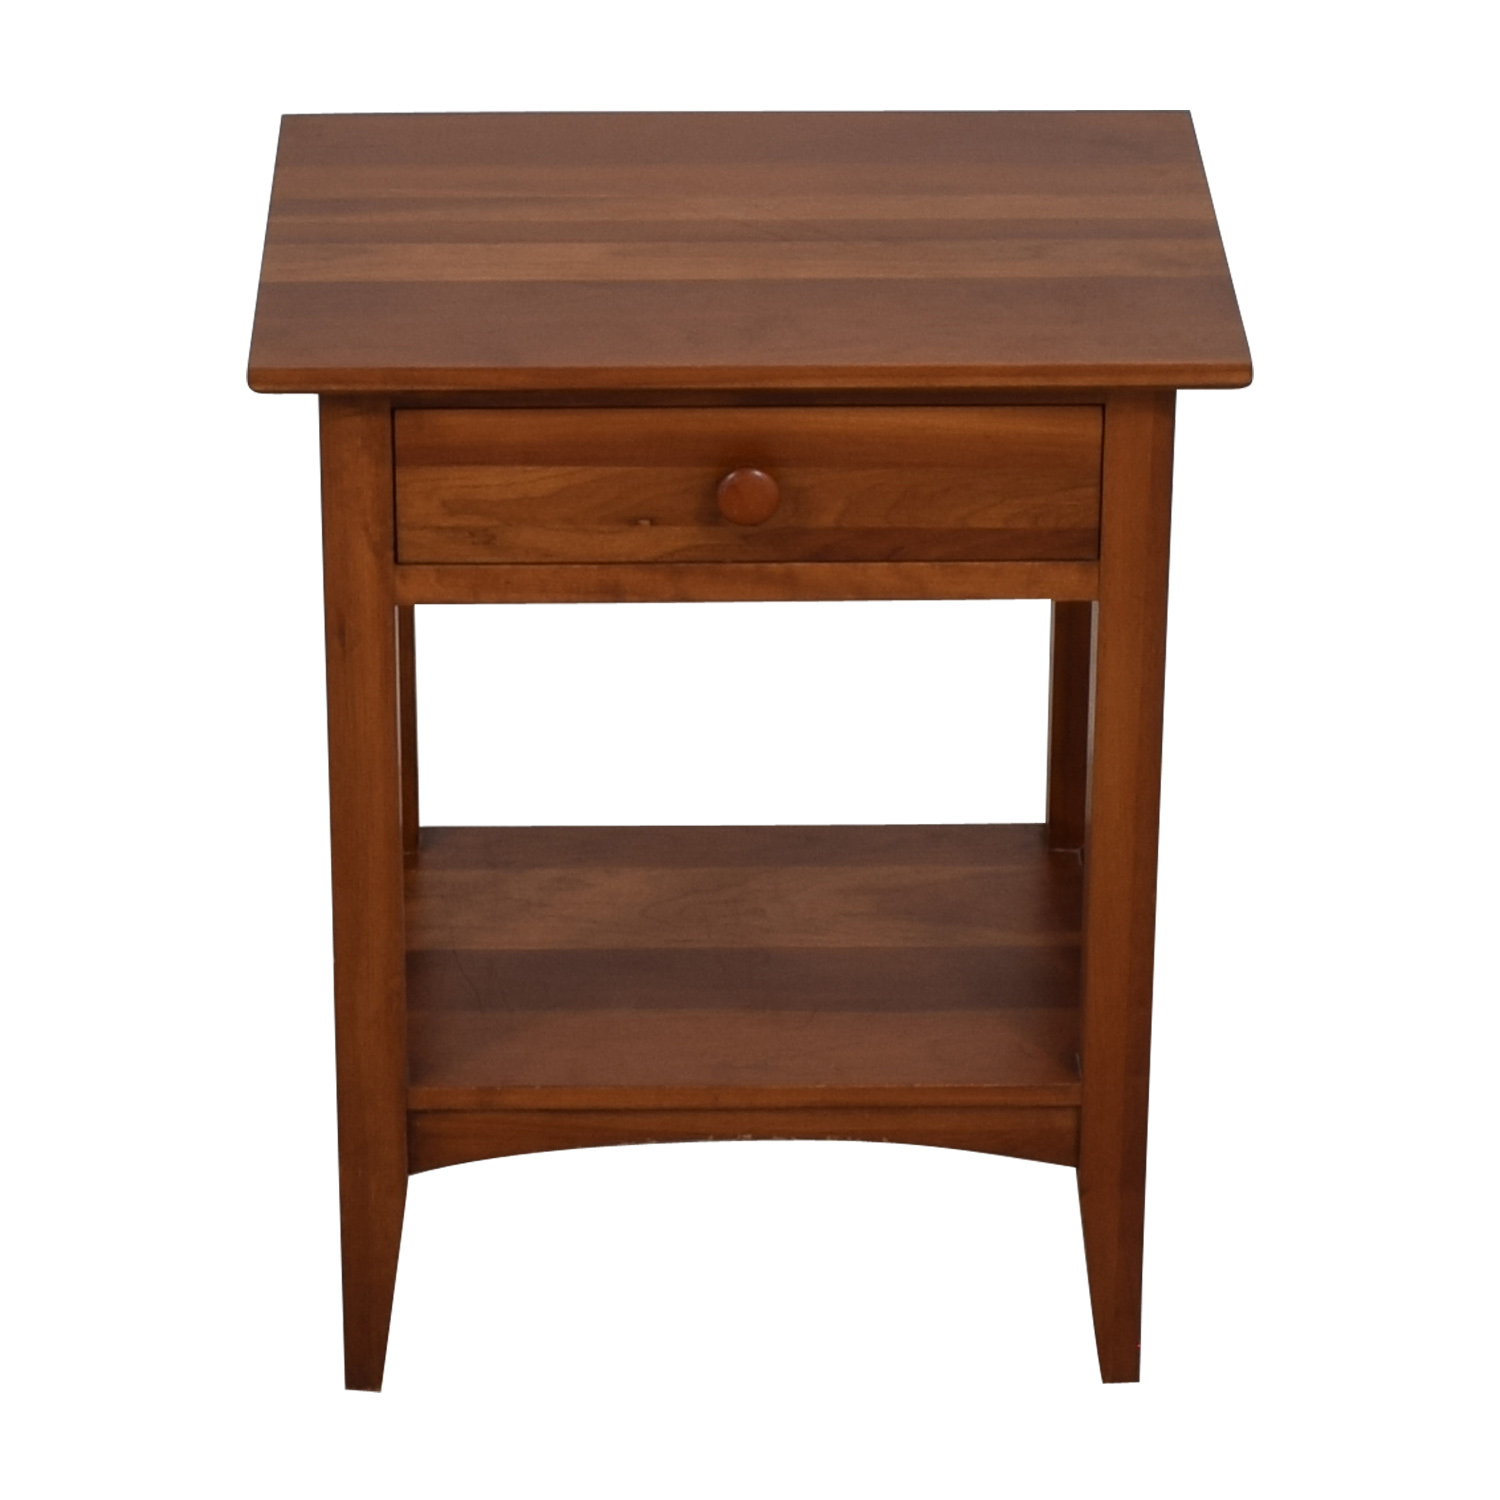 Ethan Allen Ethan Allen Single Drawer Wood Nightstand for sale